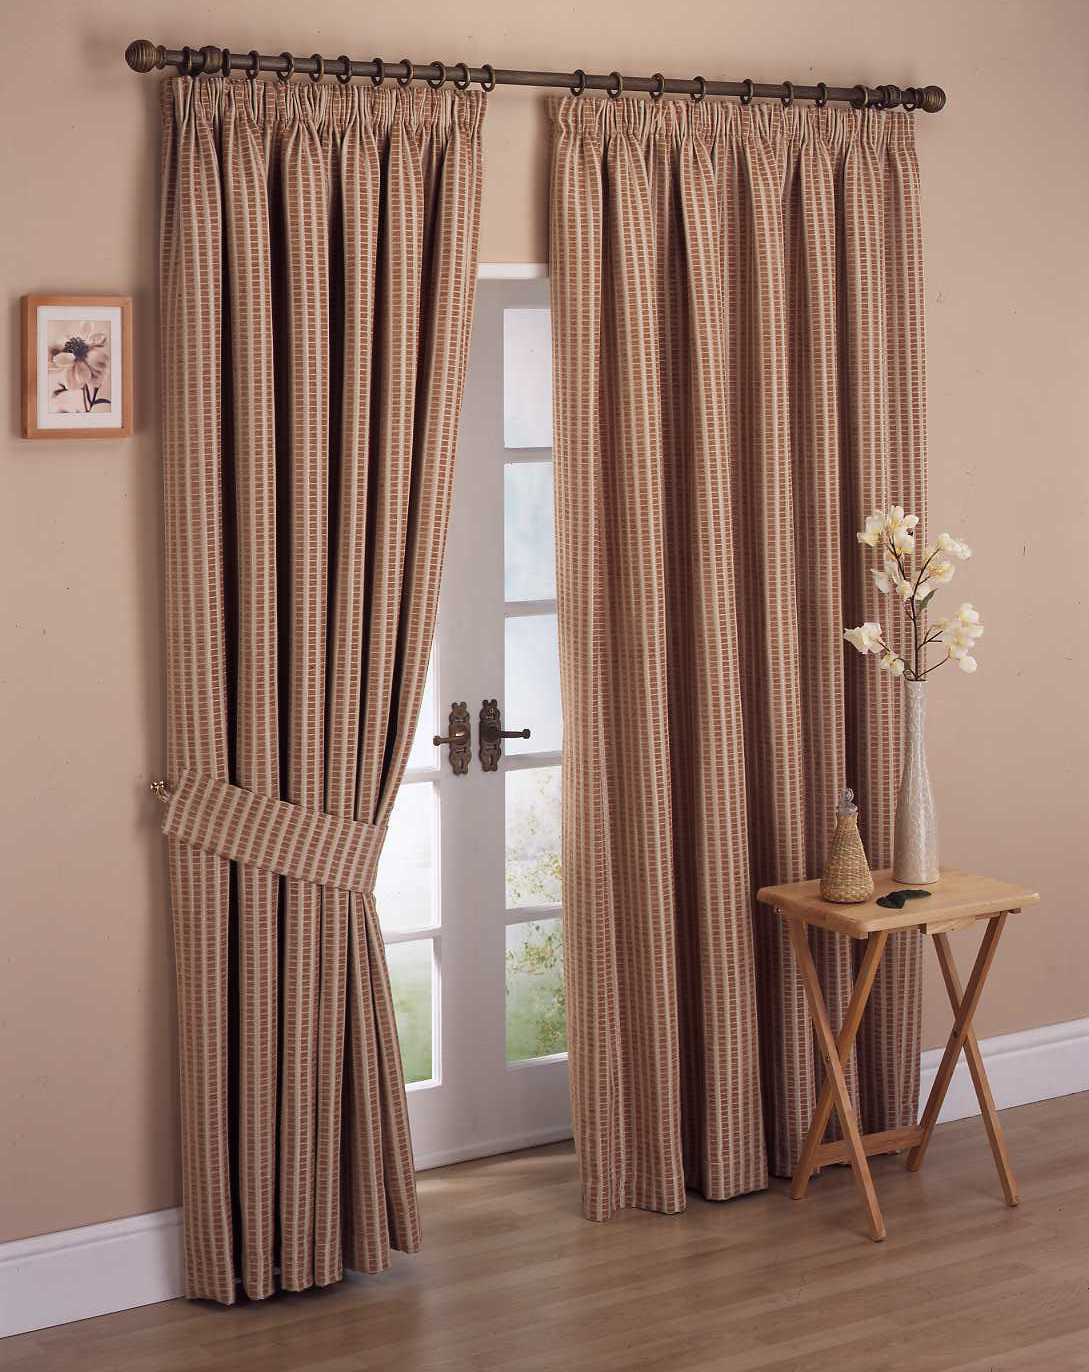 Curtain Designs for Windows Wooden Floor White Glass Door Brown Wall Brown Pattern Curtains